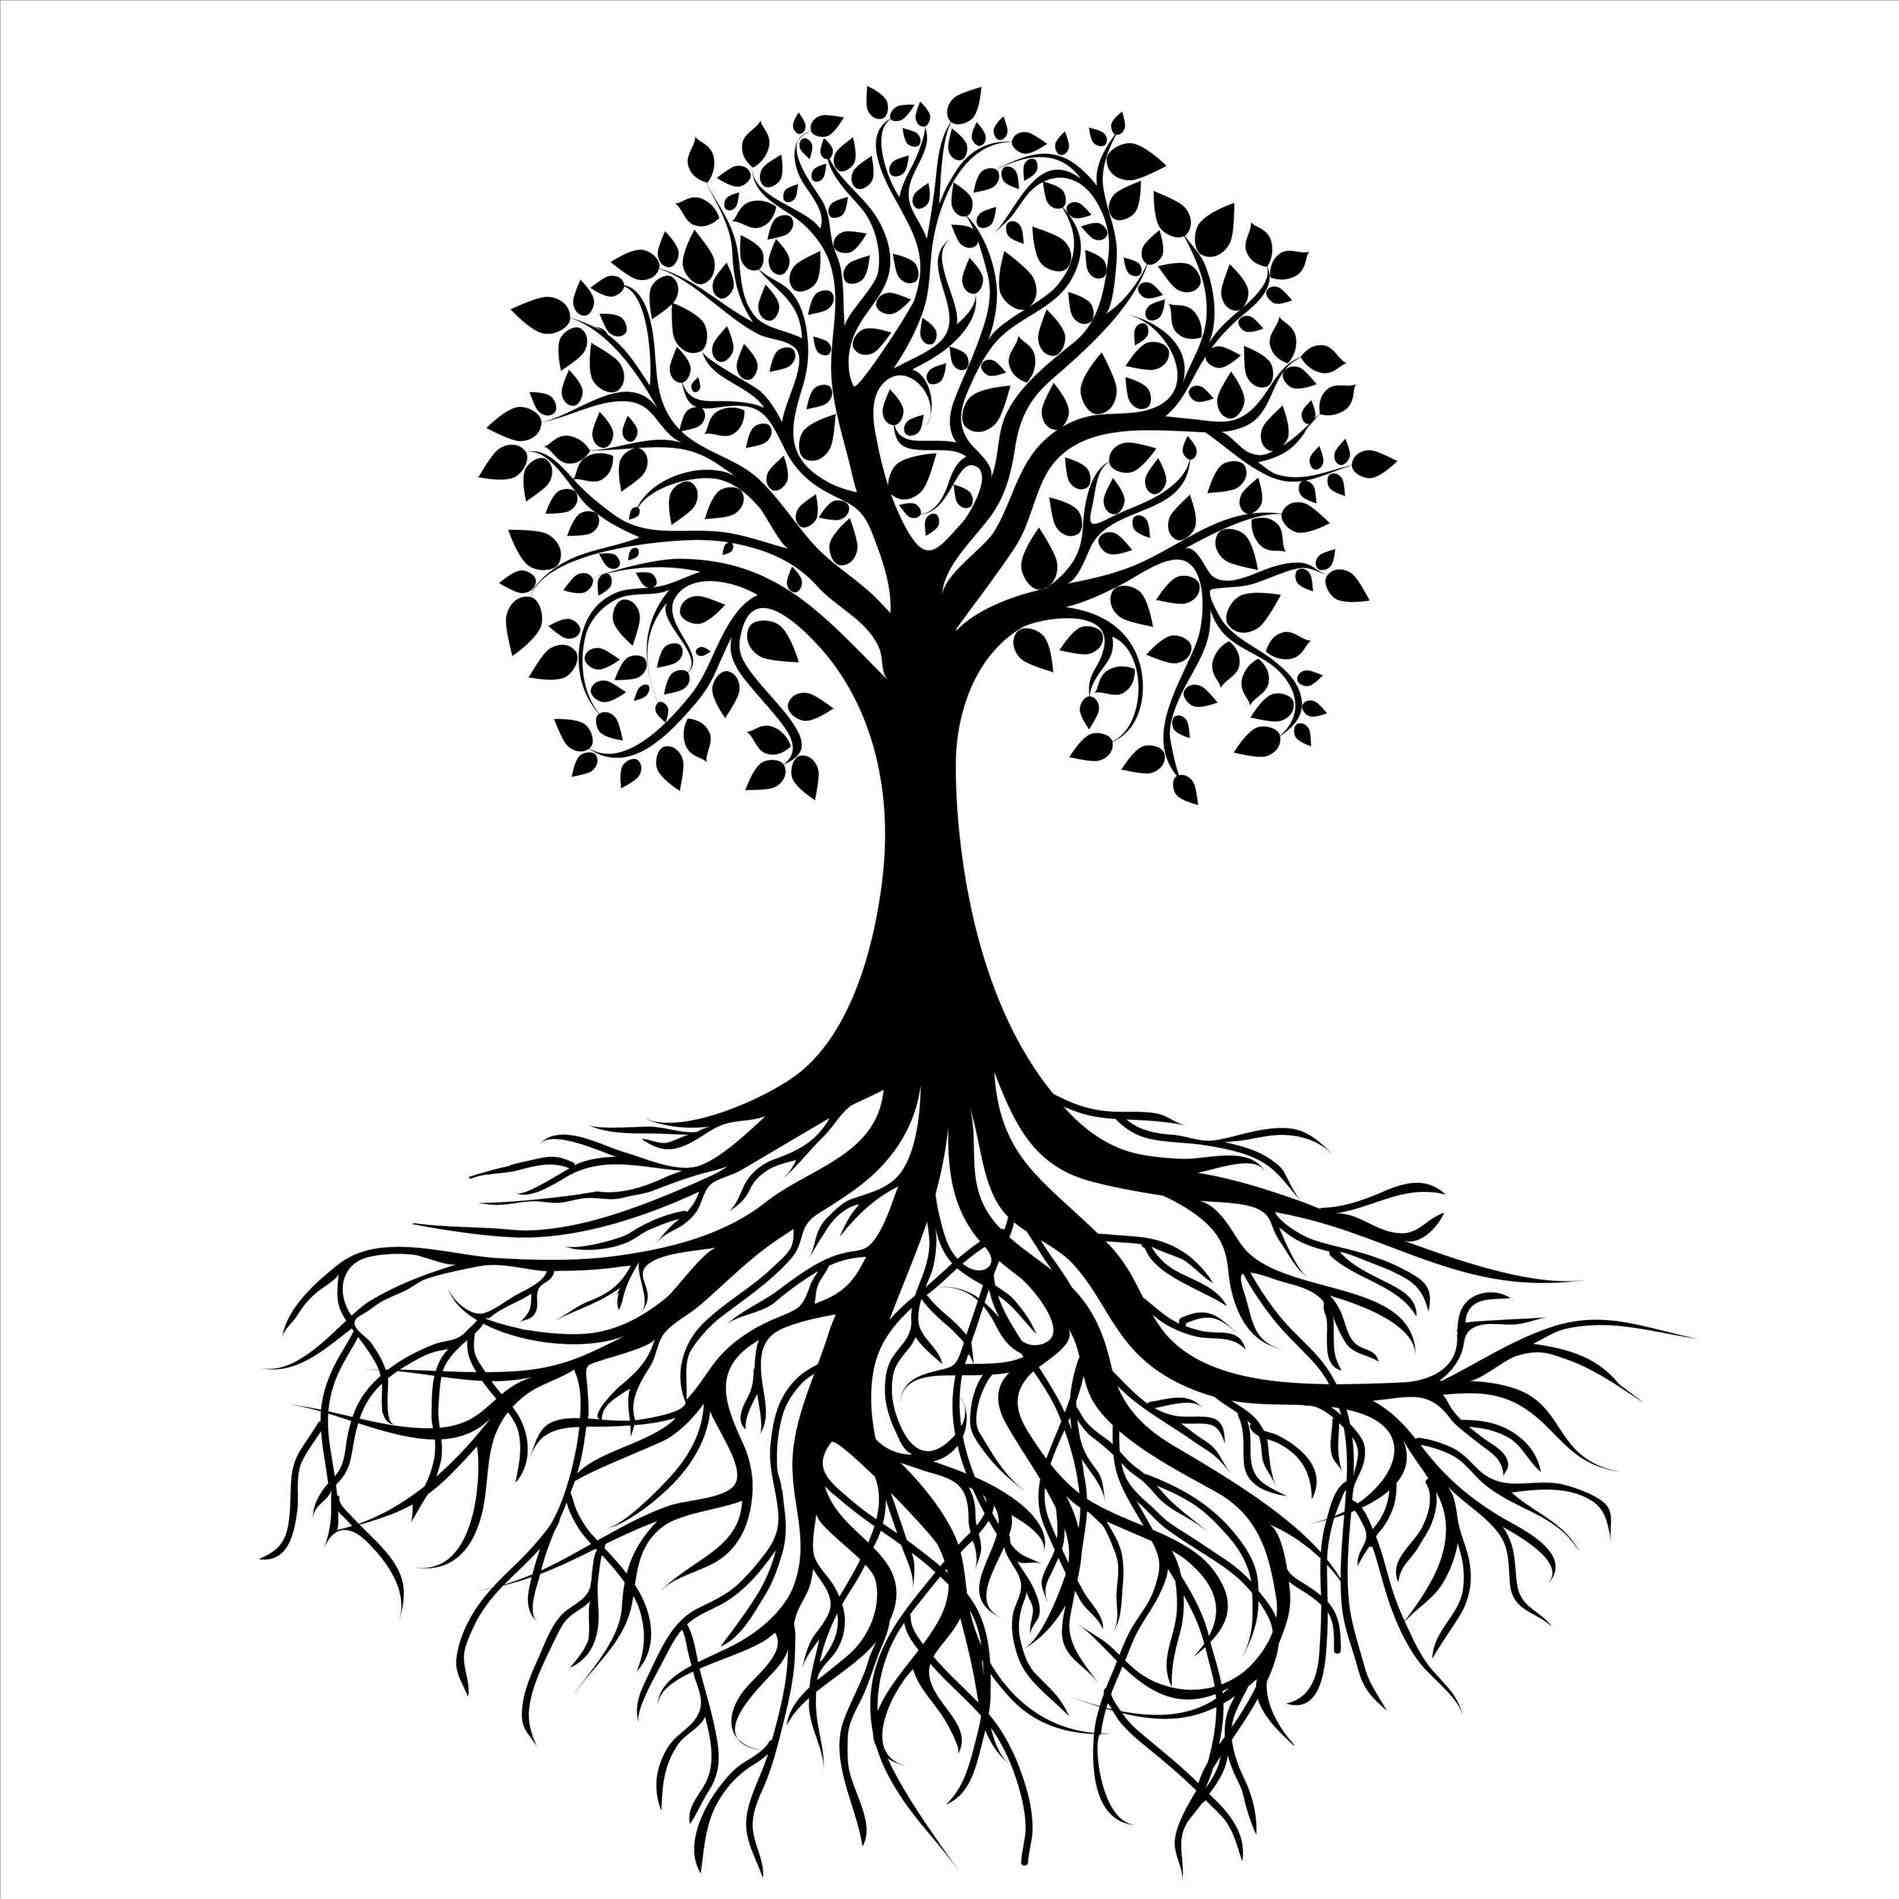 1899x1899 Simple Black And White Tree Drawings